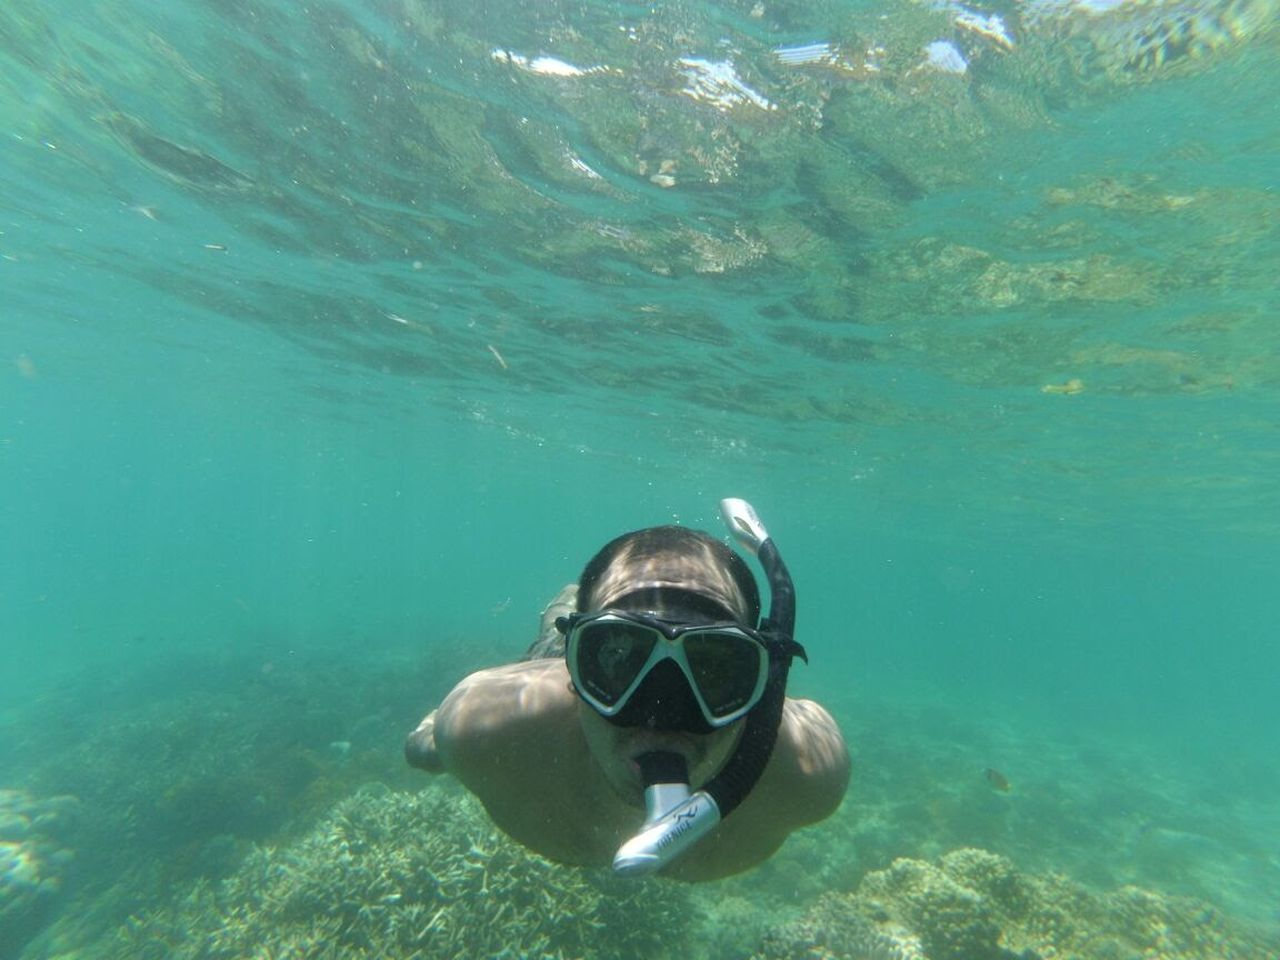 Under water Vacations Water Underwater Swimming Sea Blue Scuba Diving UnderSea Aquatic Sport Snorkeling Nature Reptile Sea Life Day Outdoors Sea Turtle Diving Equipment People Face Guard - Sport